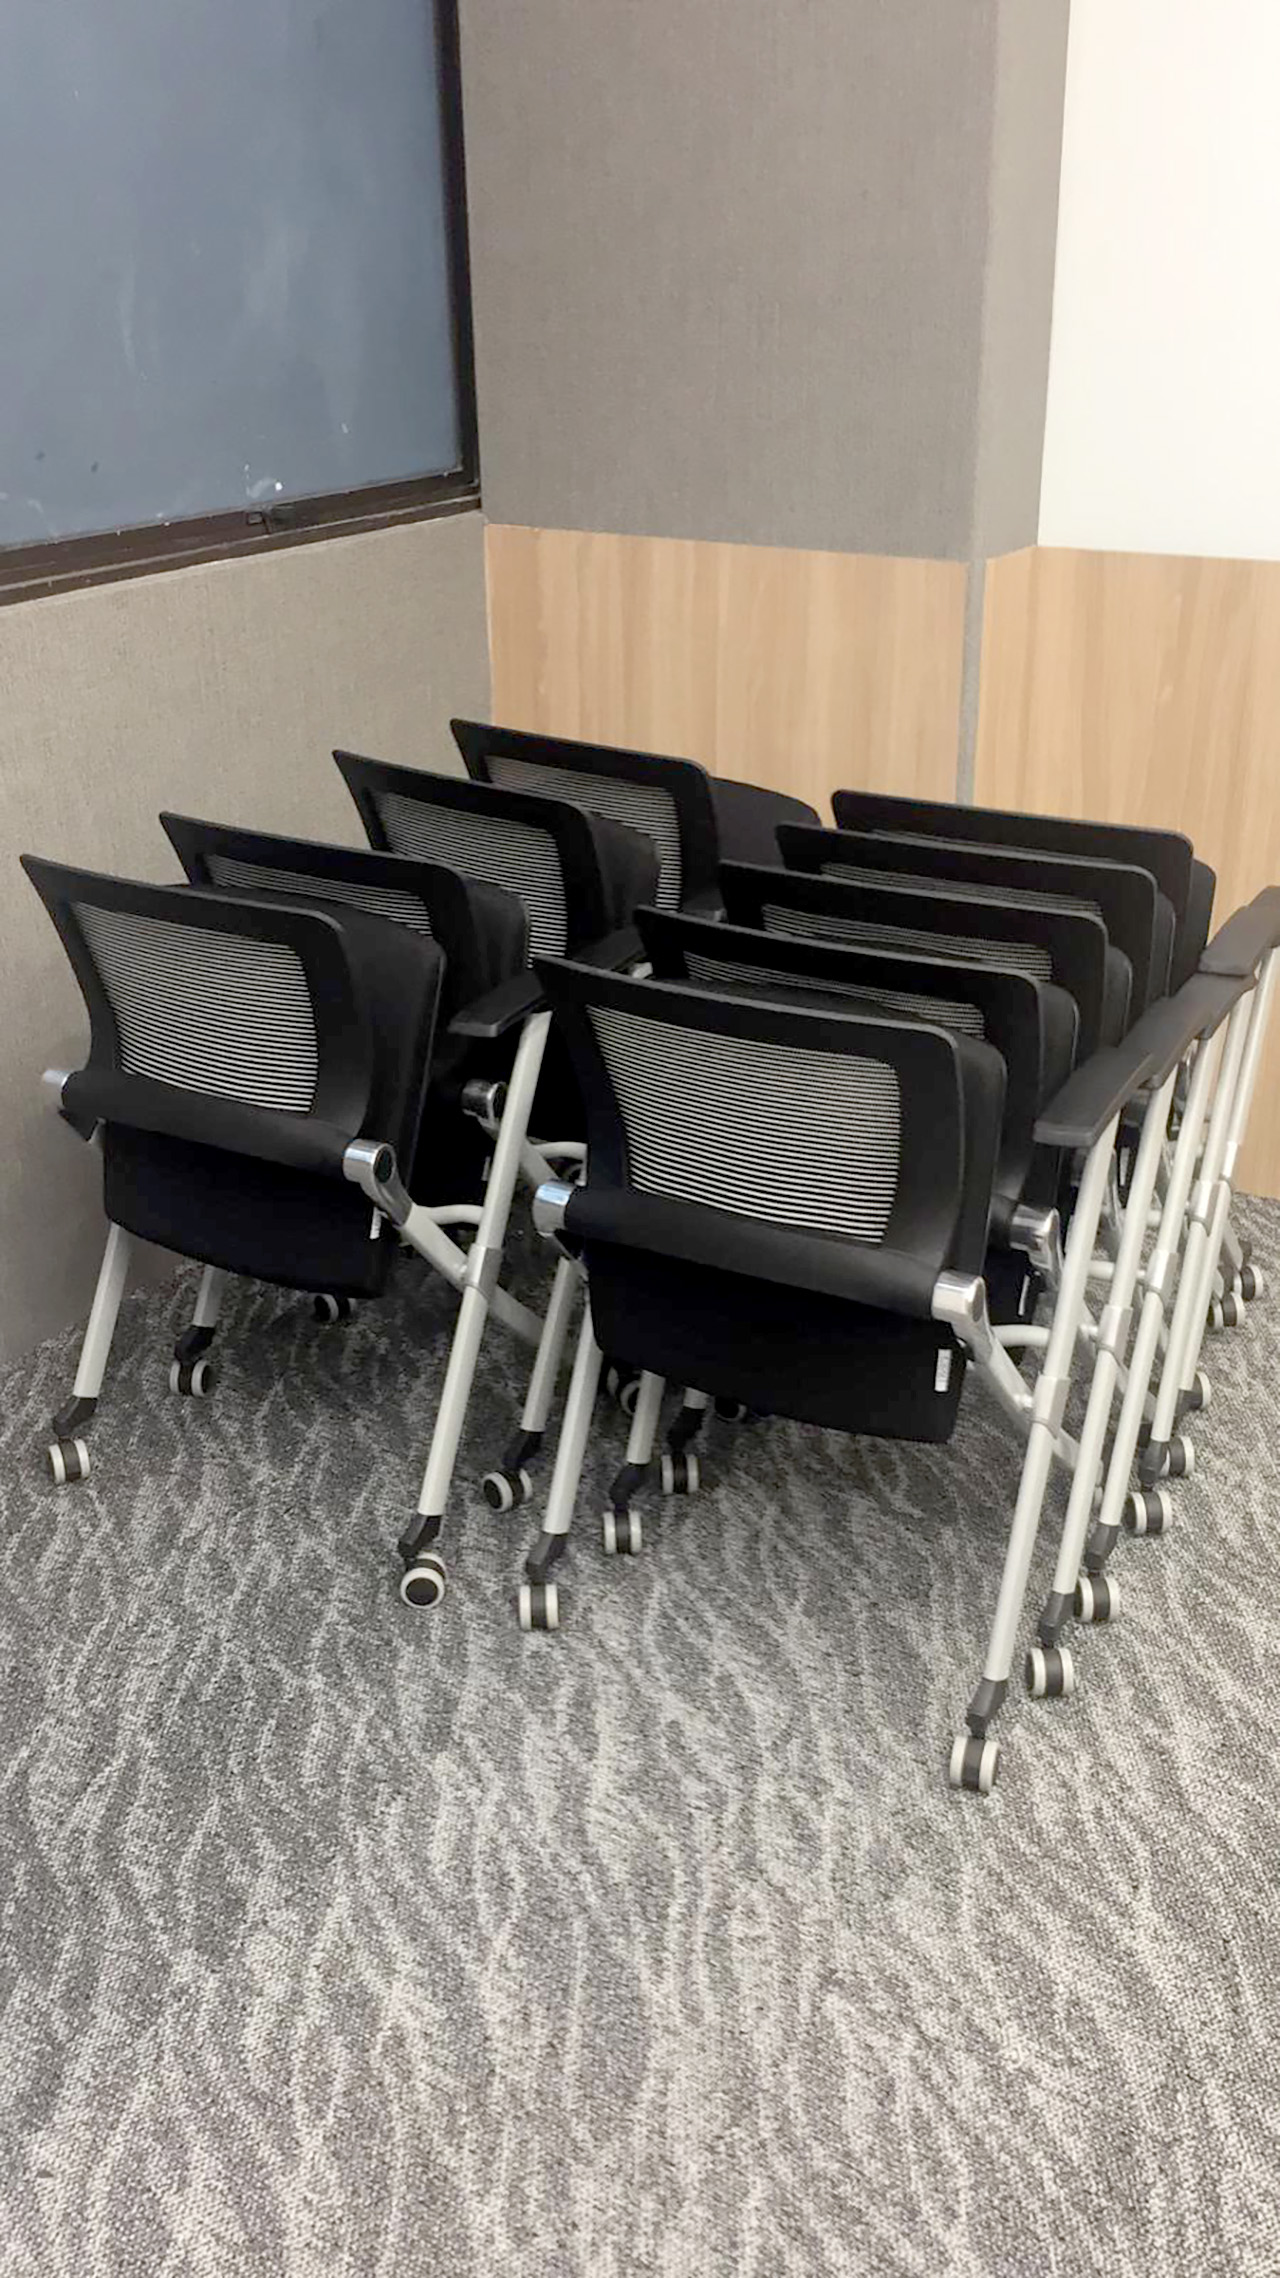 ECON Healthcare Group - Changi Road | Product Seen: [Dynamo Armchair w/ Castors (Nestable)]